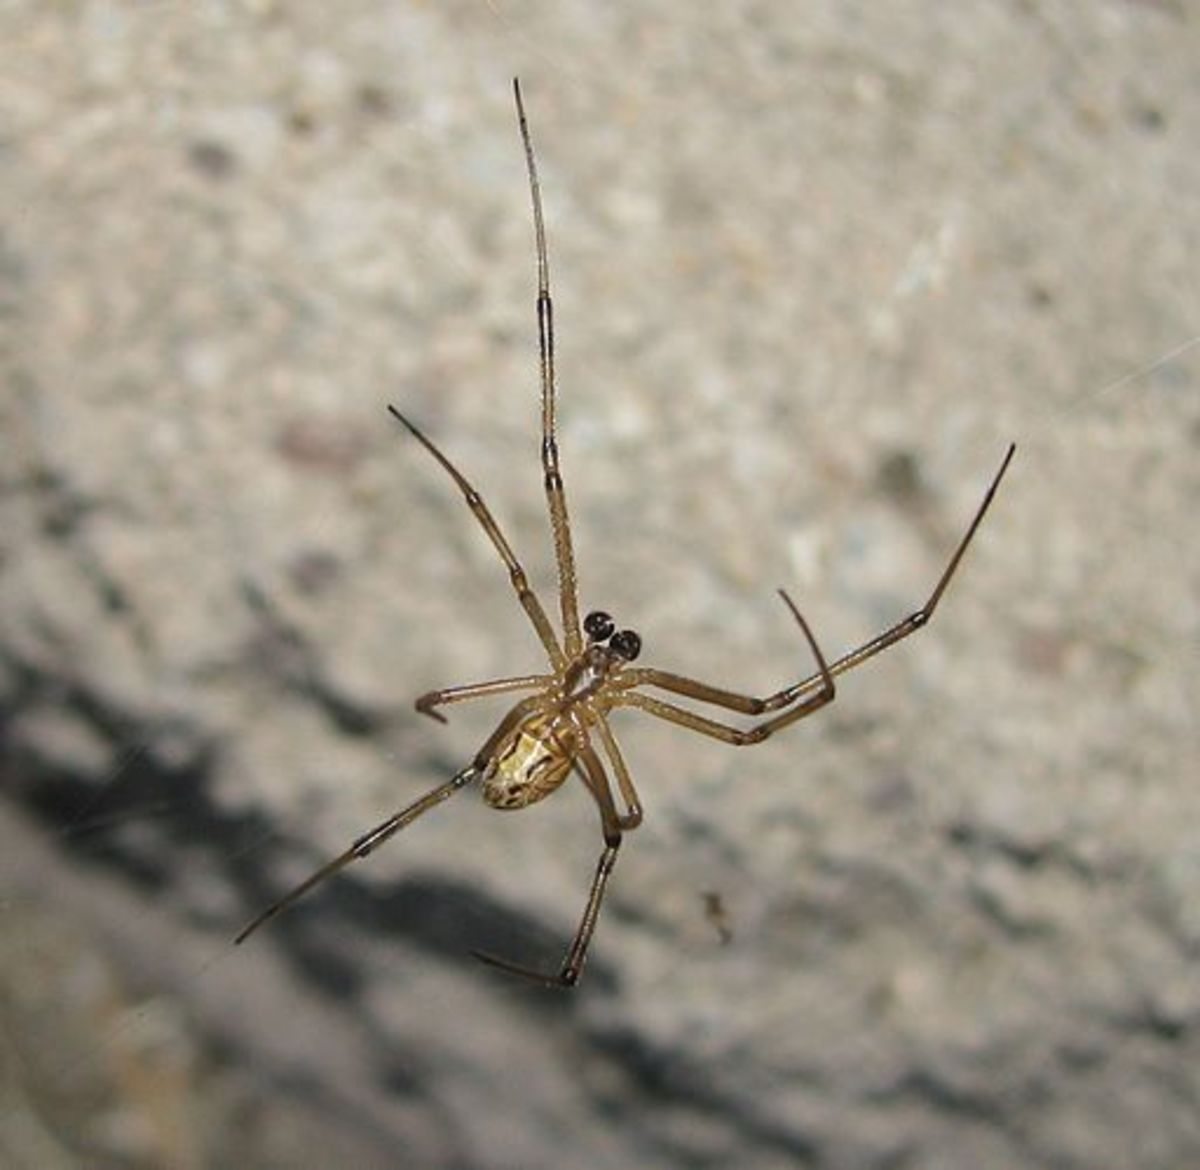 Being a male black widow is a tough job. To identify a male, look for the light brown brown body and its disproportionately large eyes.